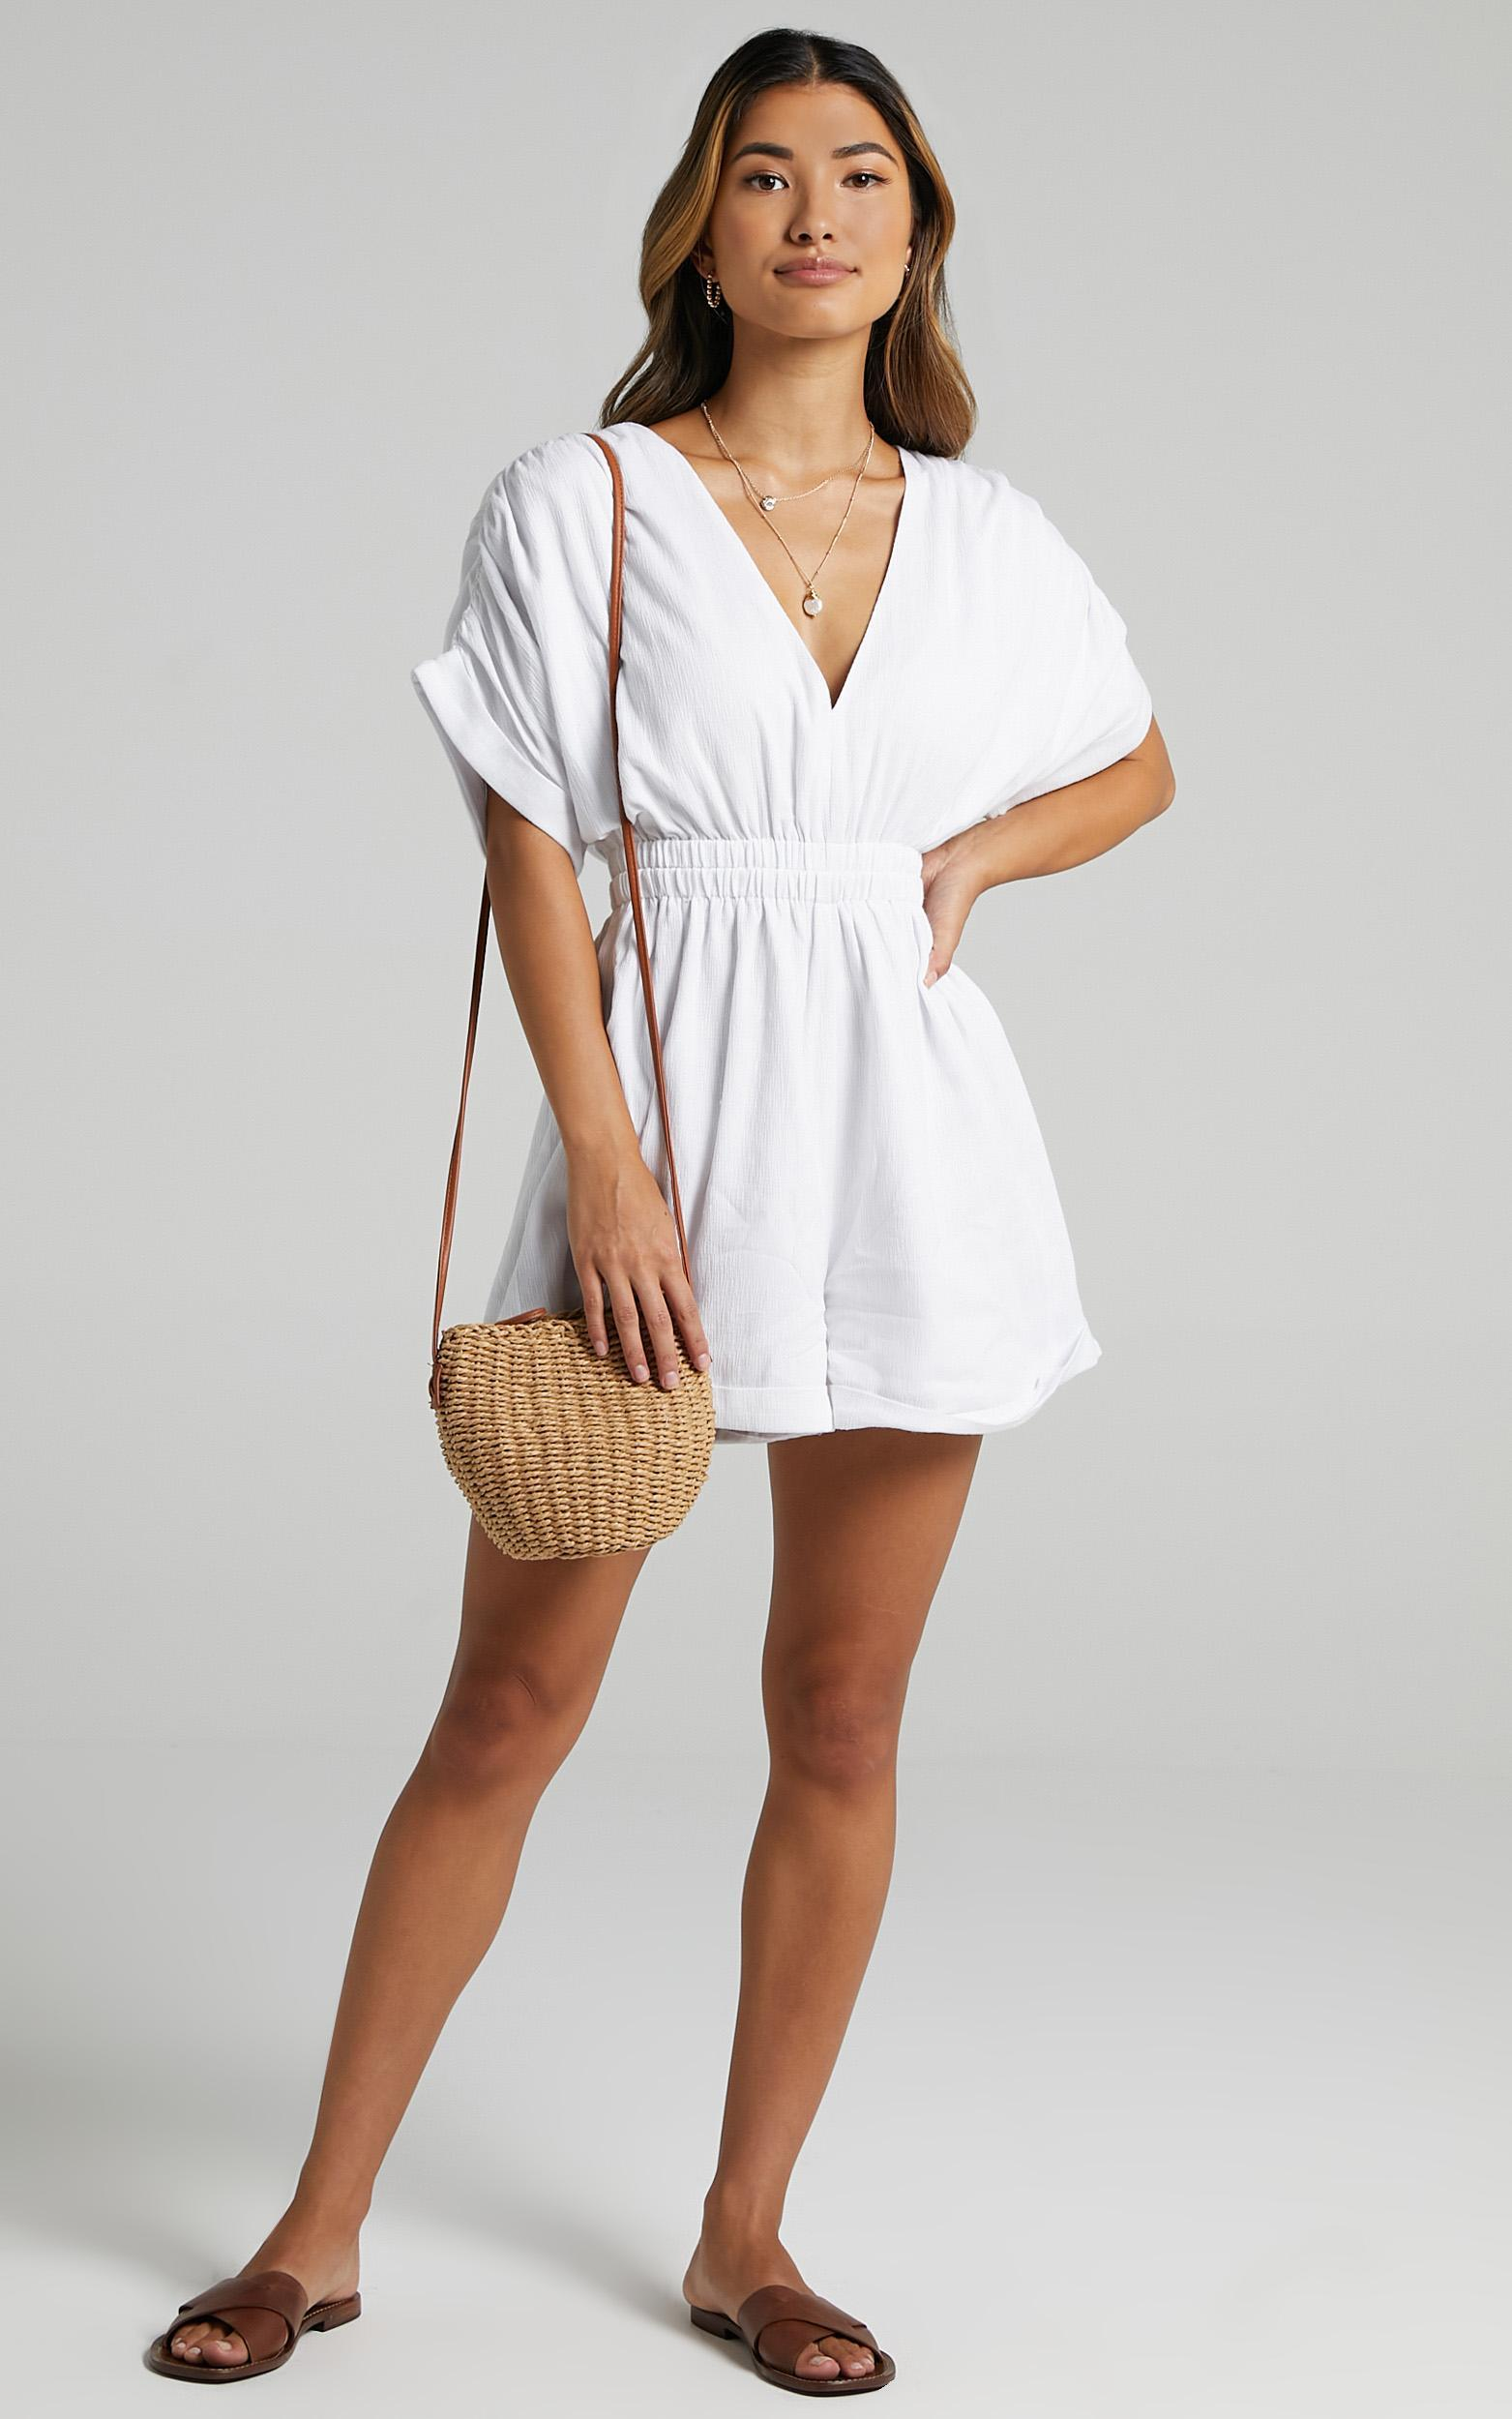 Nexi Playsuit in White - 6 (XS), White, hi-res image number null